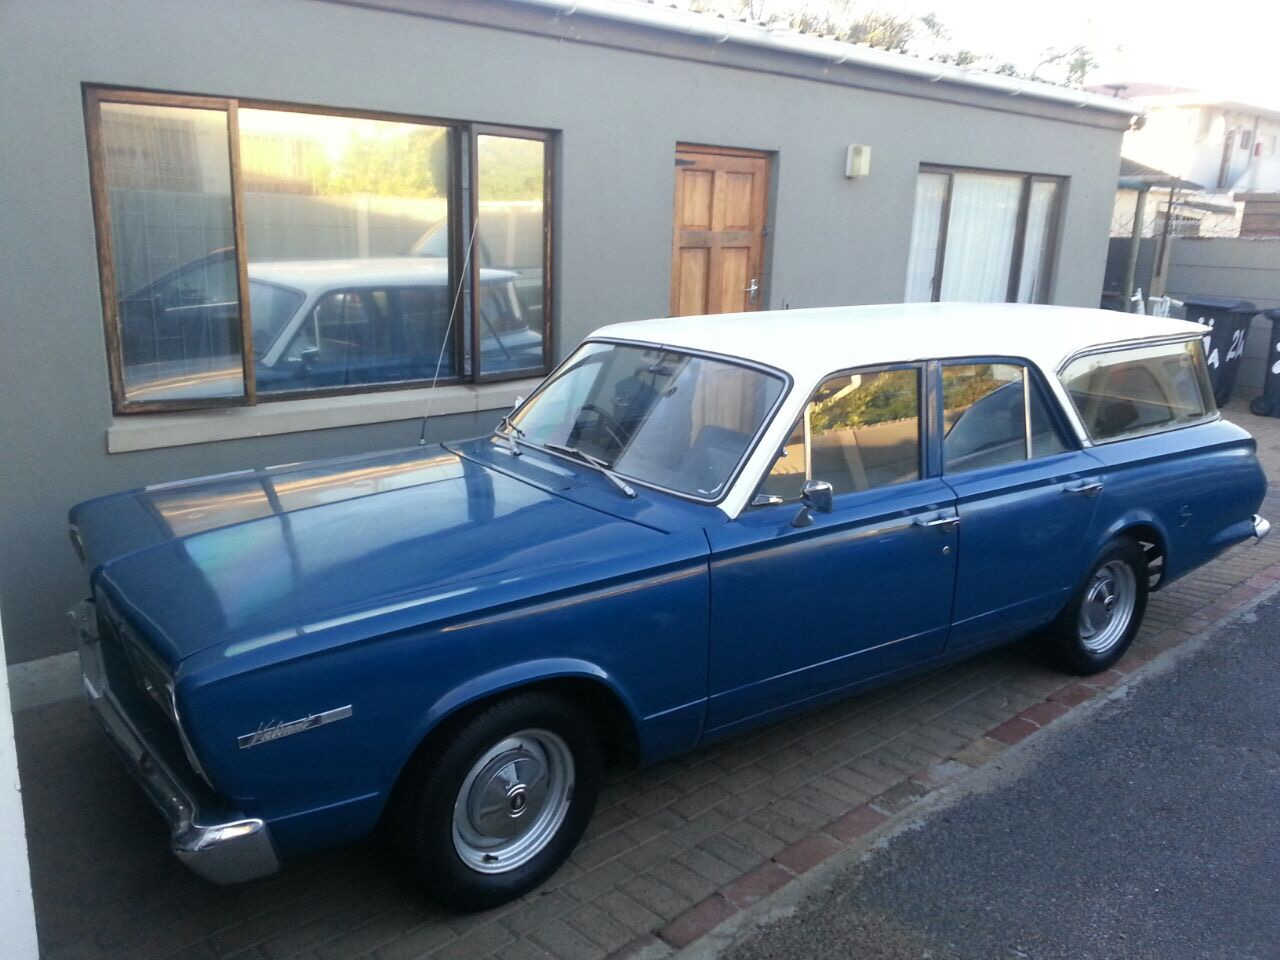 1966 Valiant 100 Stationwagon